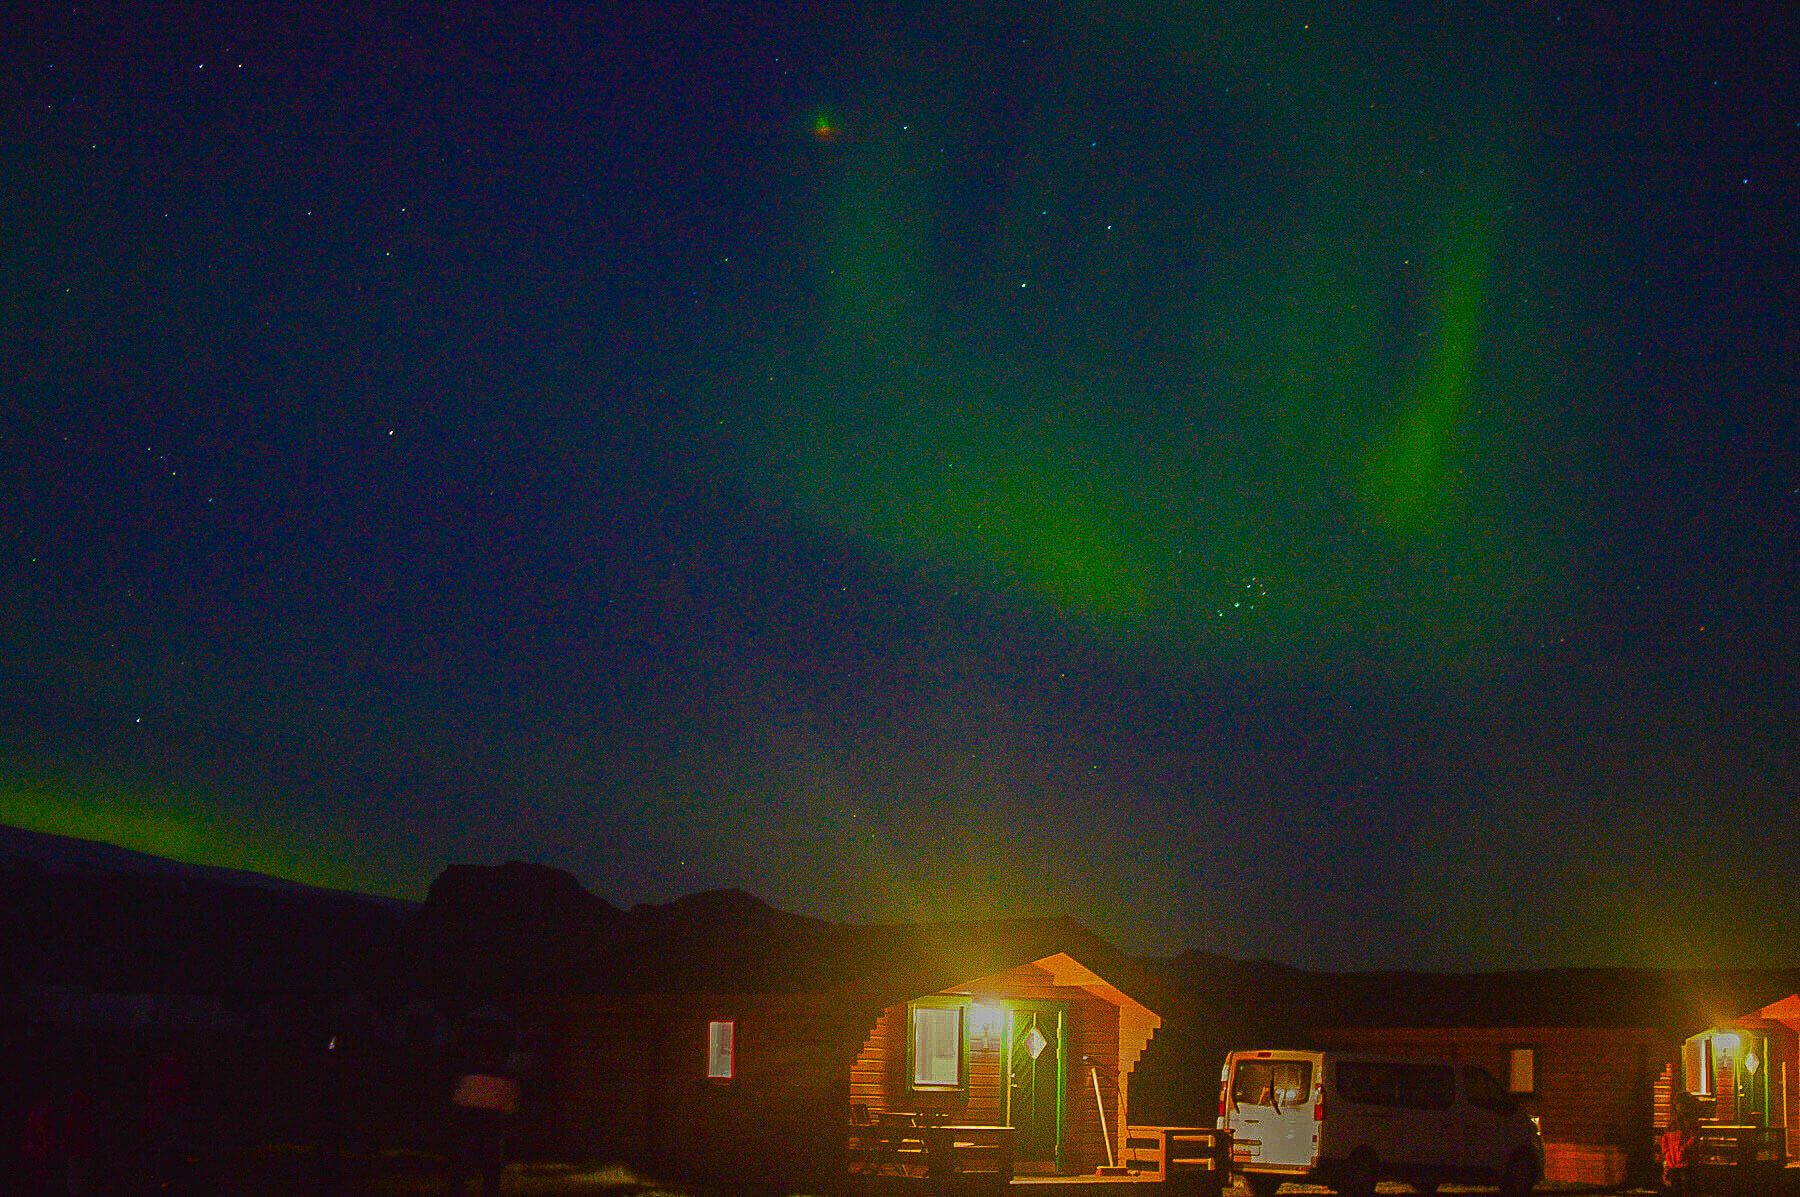 The northern lights above a cabin at night